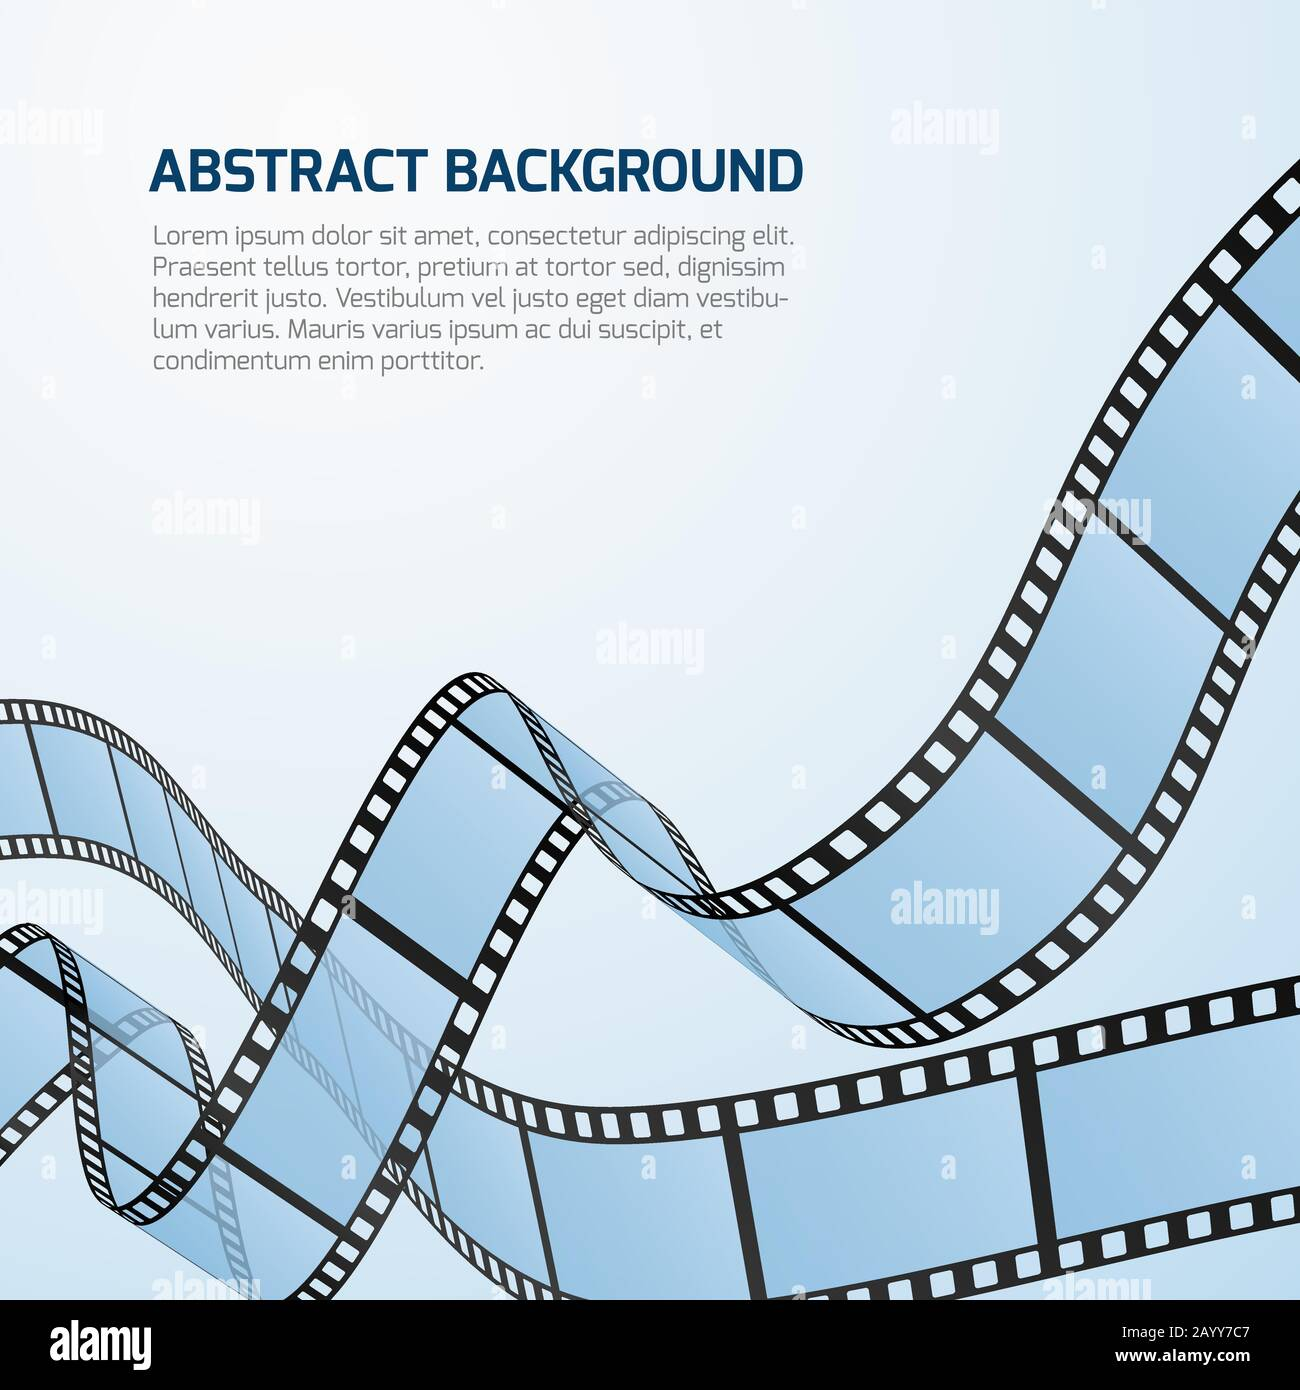 film strip roll vector cinema background cinematography strip film background and wave stripe film illustration stock vector image art alamy https www alamy com film strip roll vector cinema background cinematography strip film background and wave stripe film illustration image344191239 html